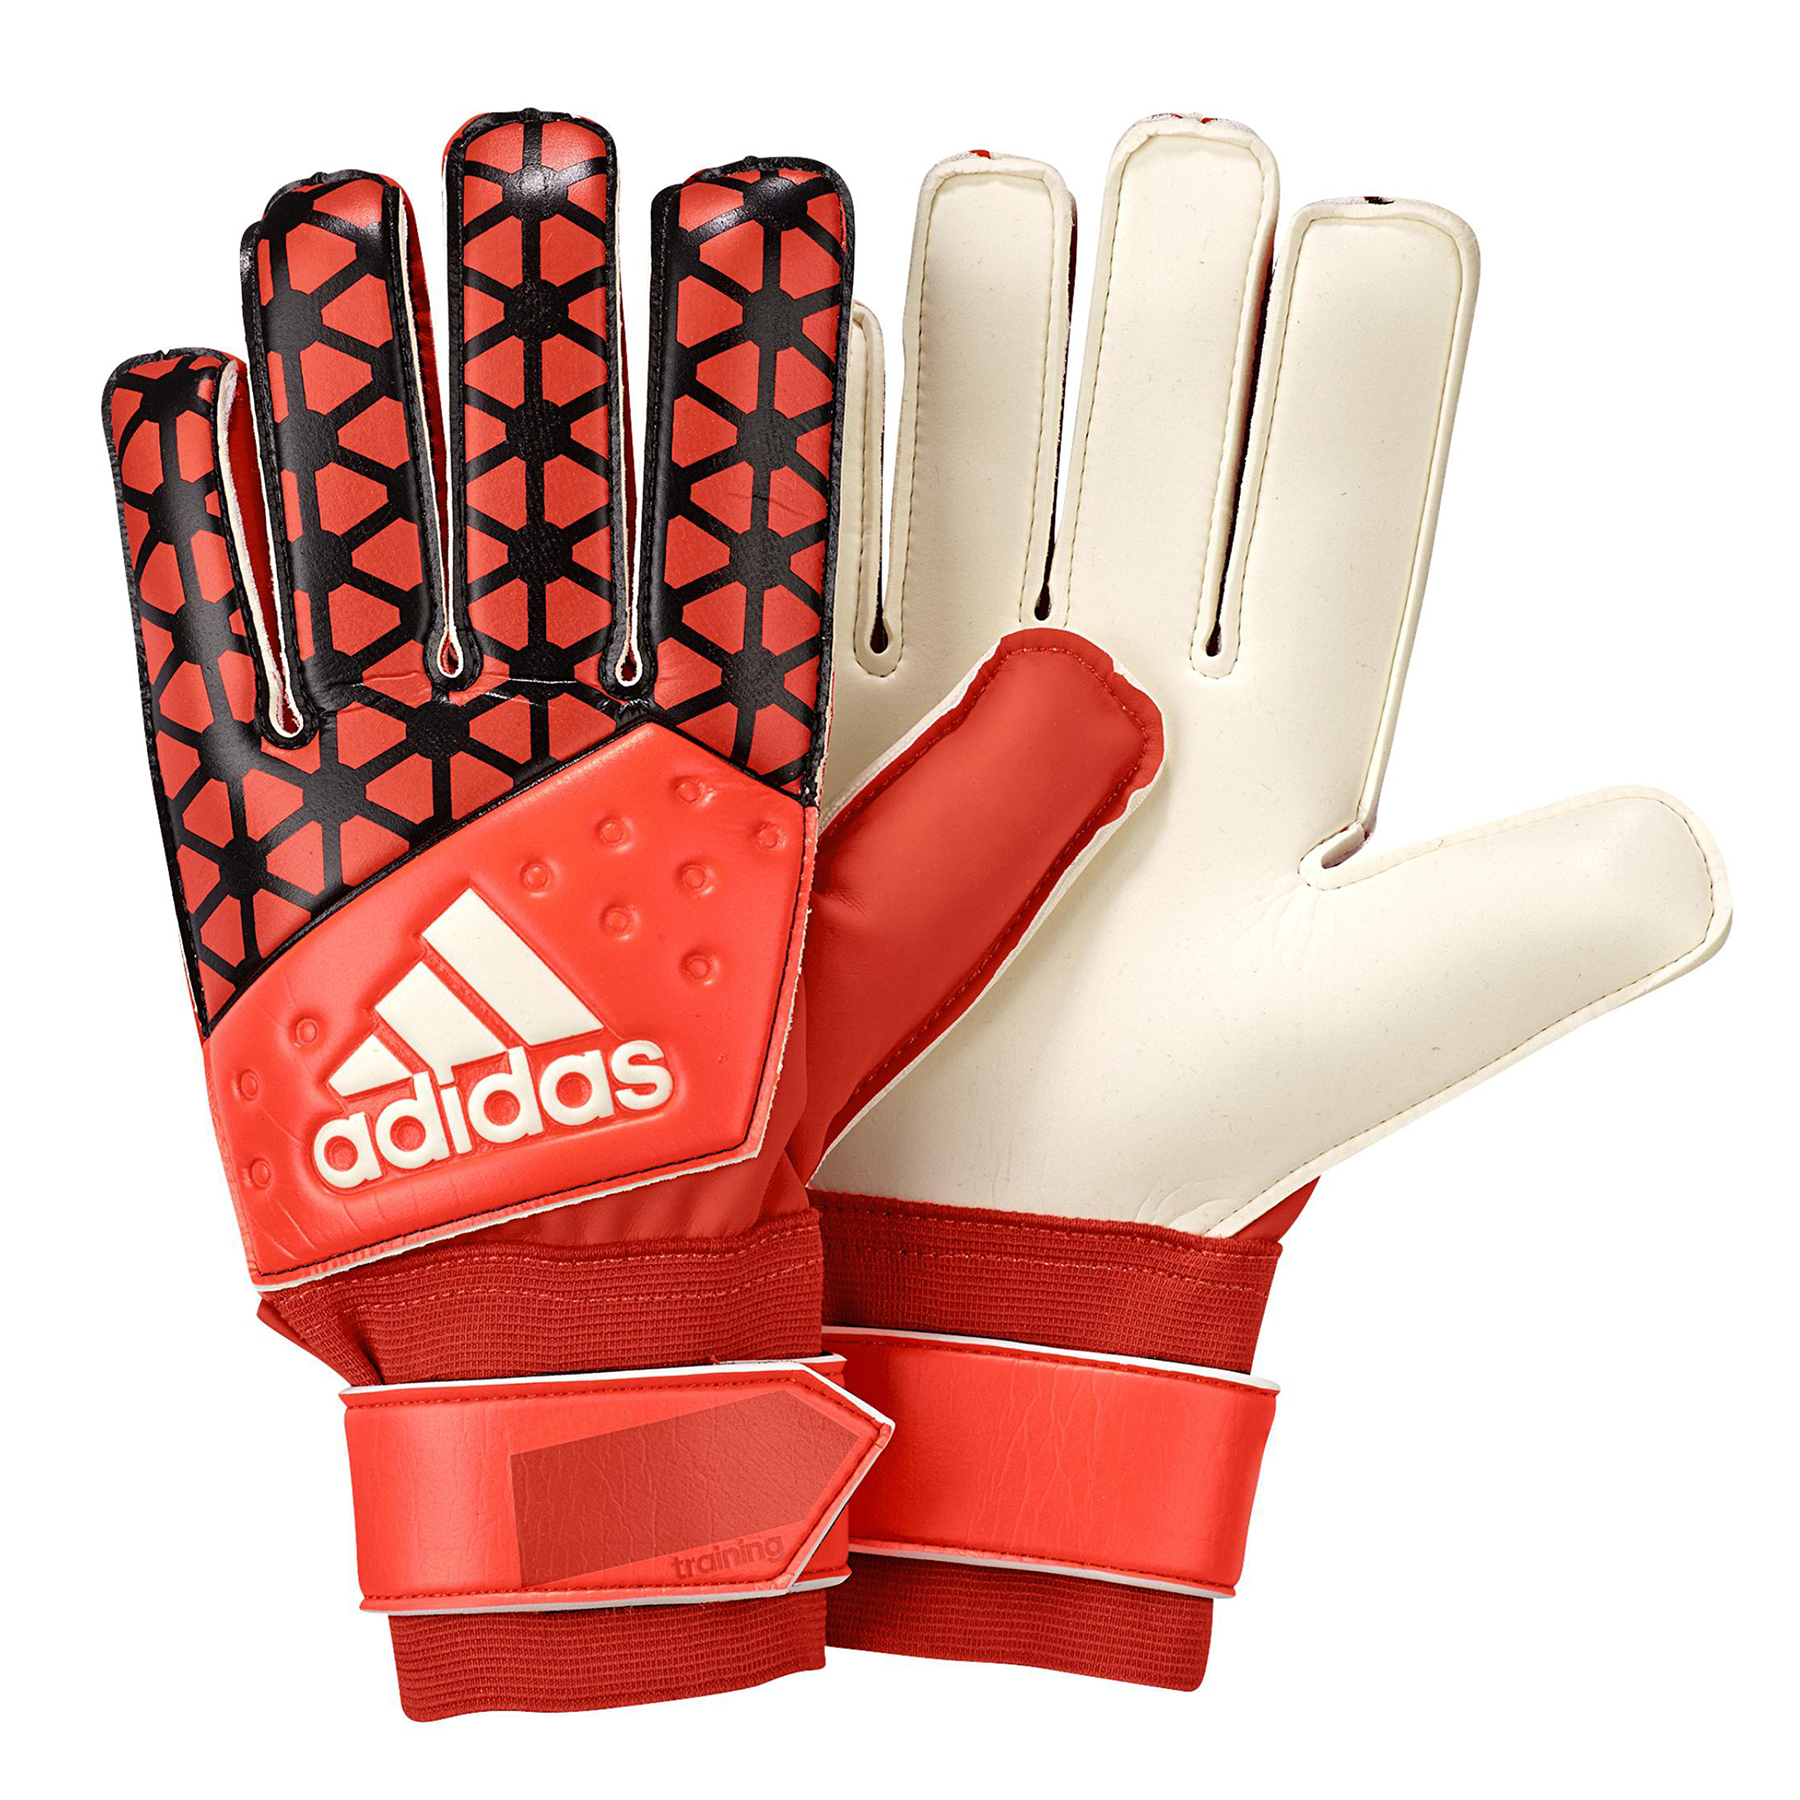 adidas Ace Training Goalkeeper Glove Orange